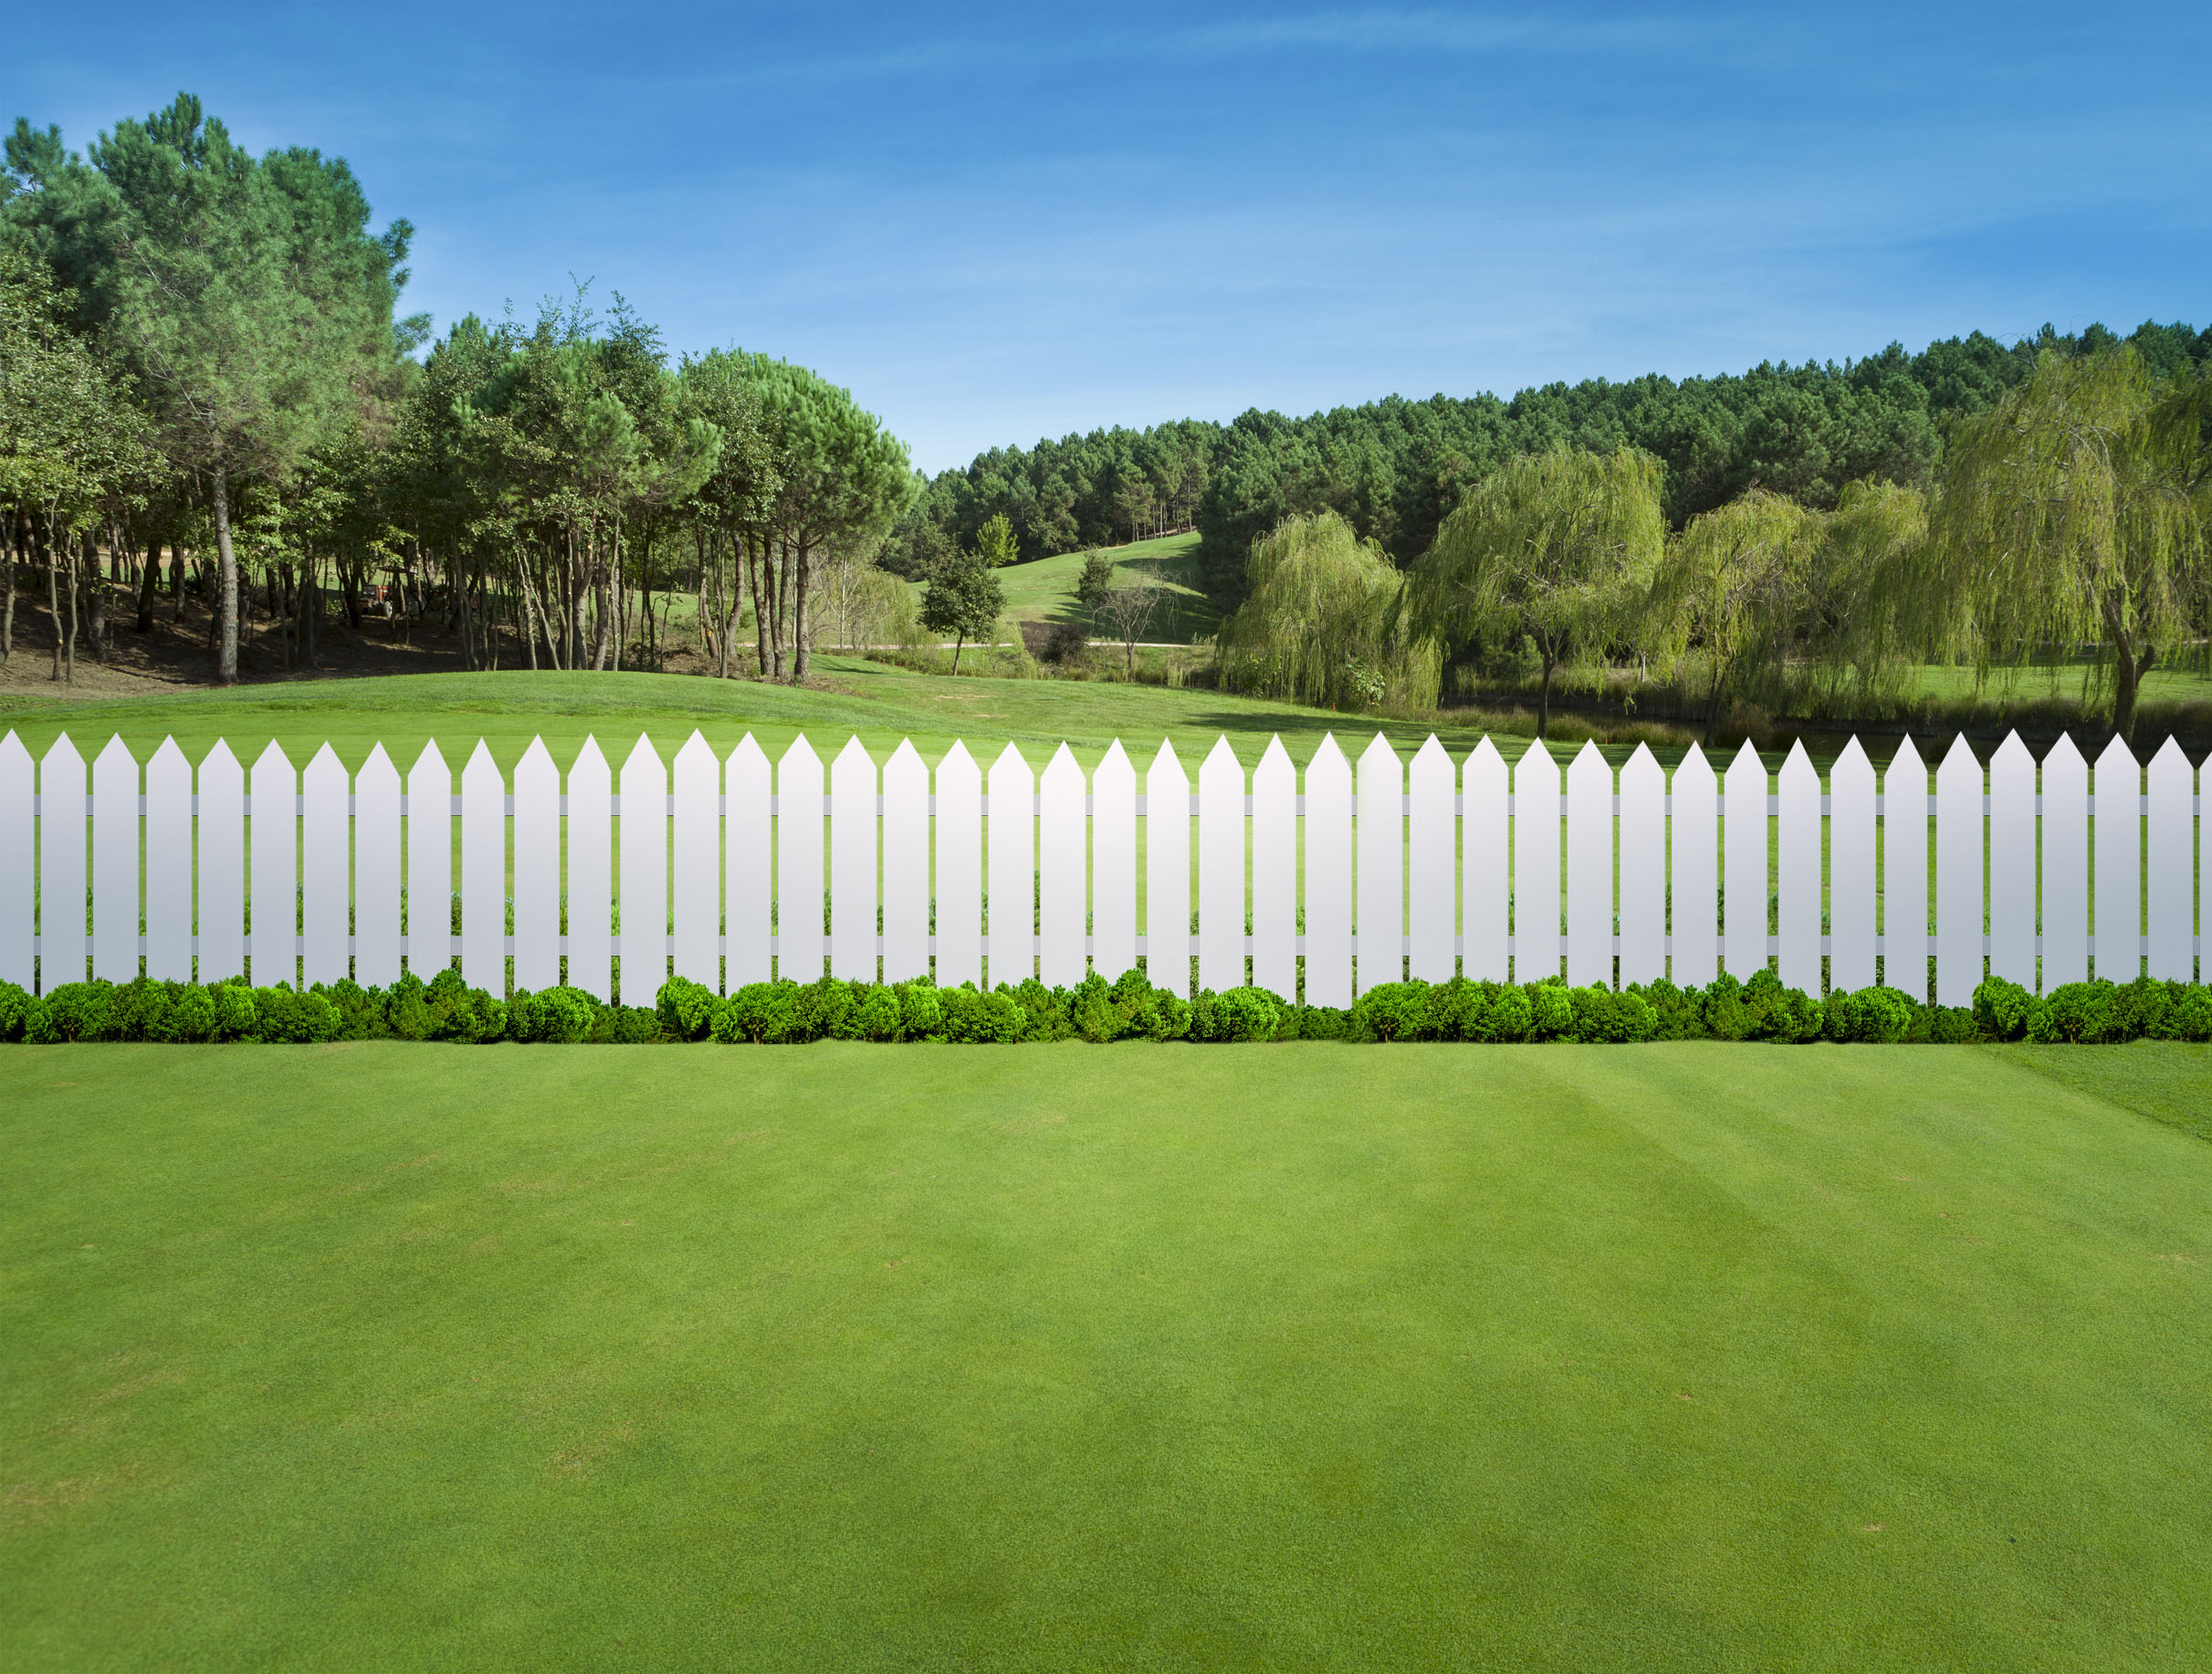 Fence Installation: Which Type Is Best for Your Needs?